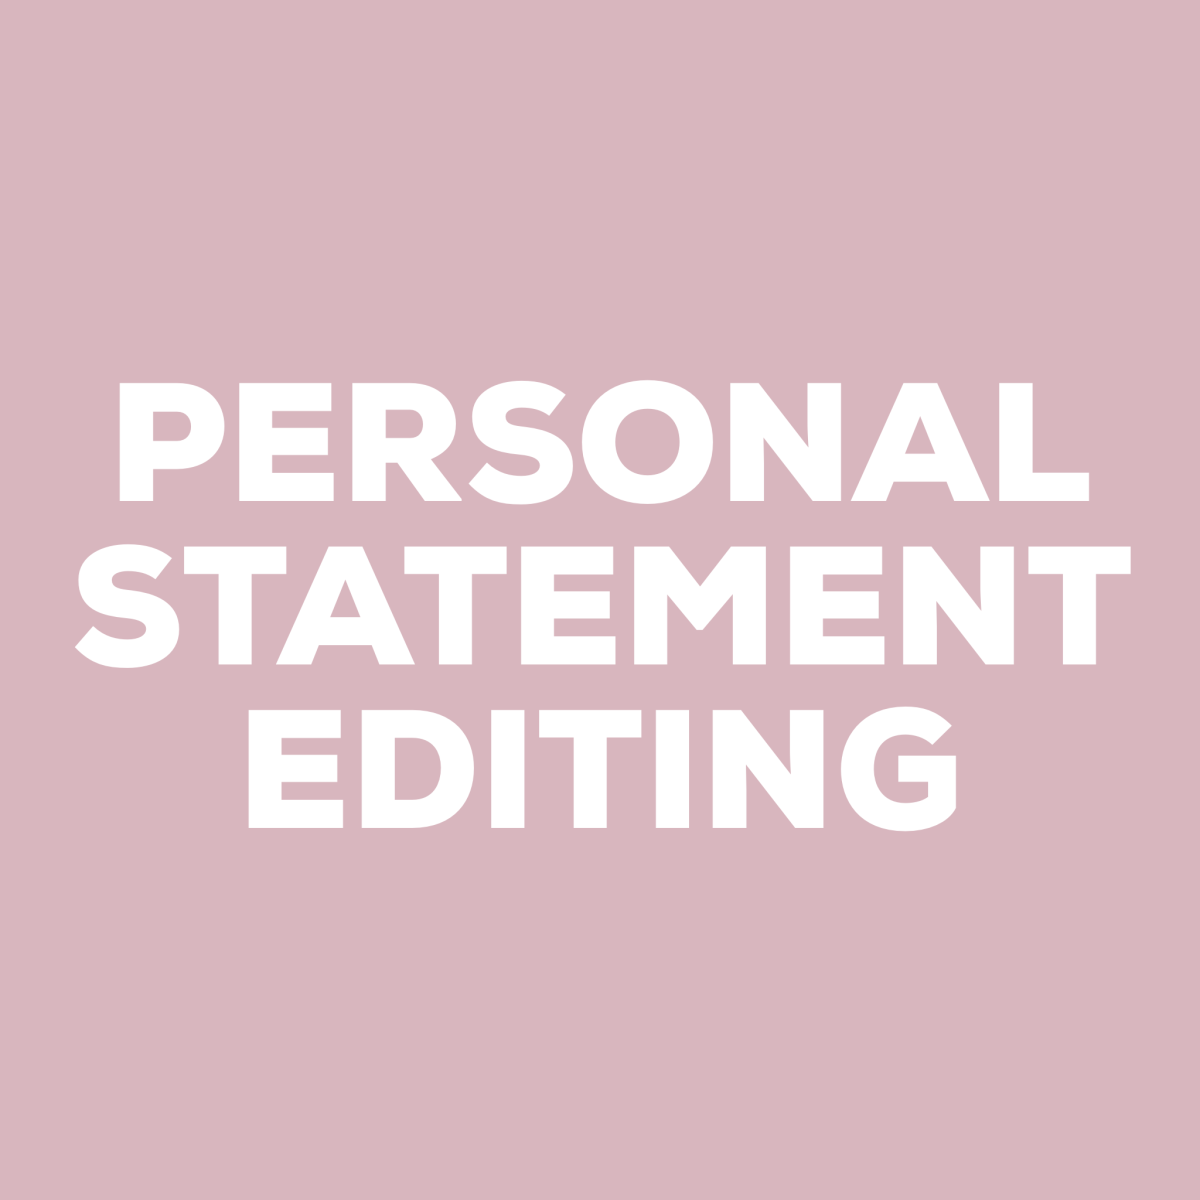 Editing a personal statement